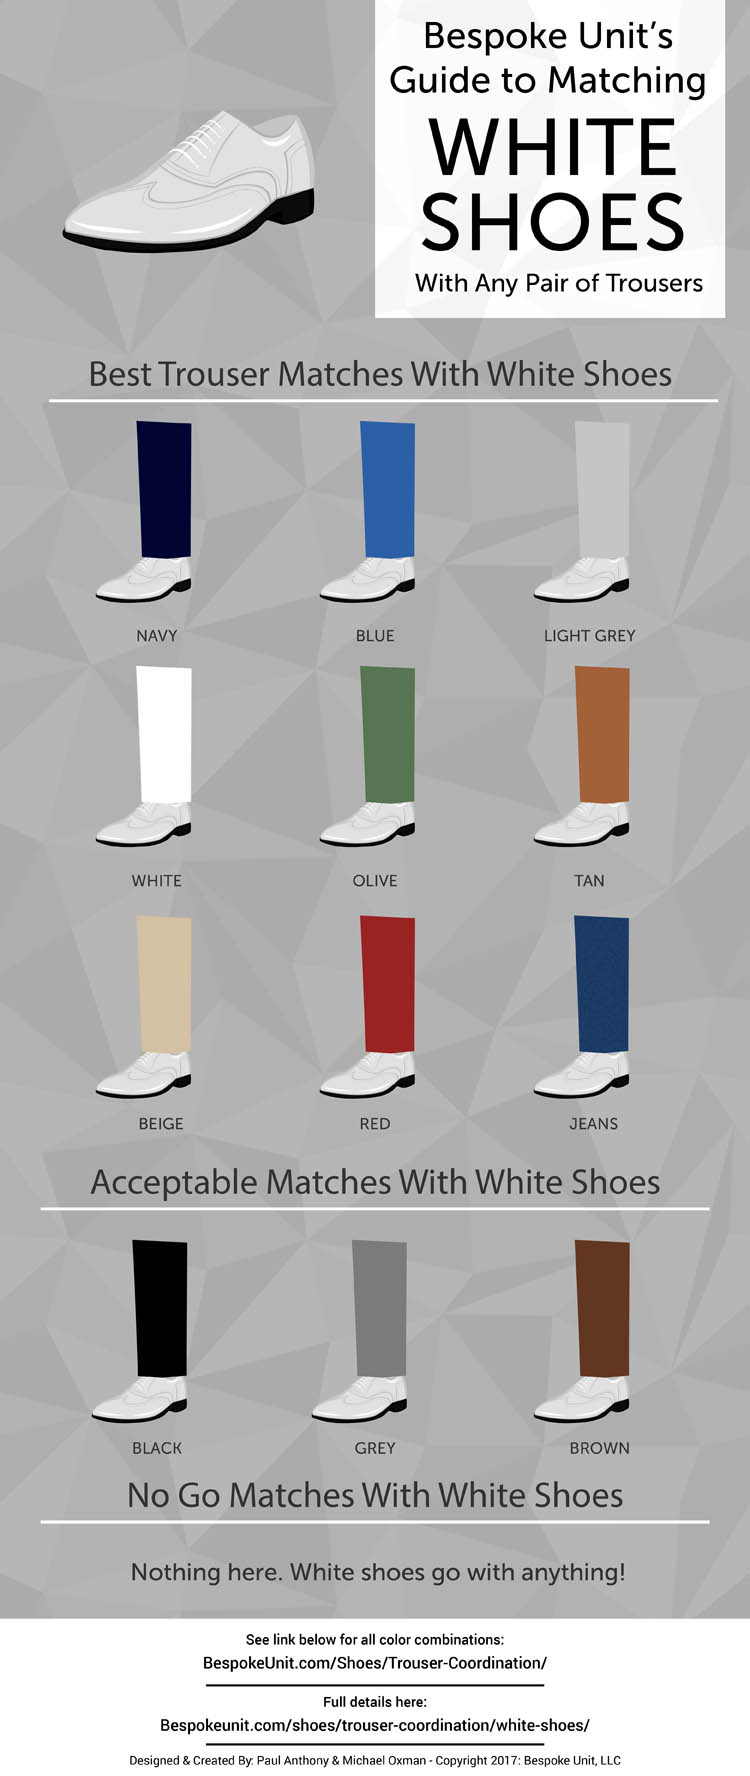 White-Shoes-Coordination-Graphic